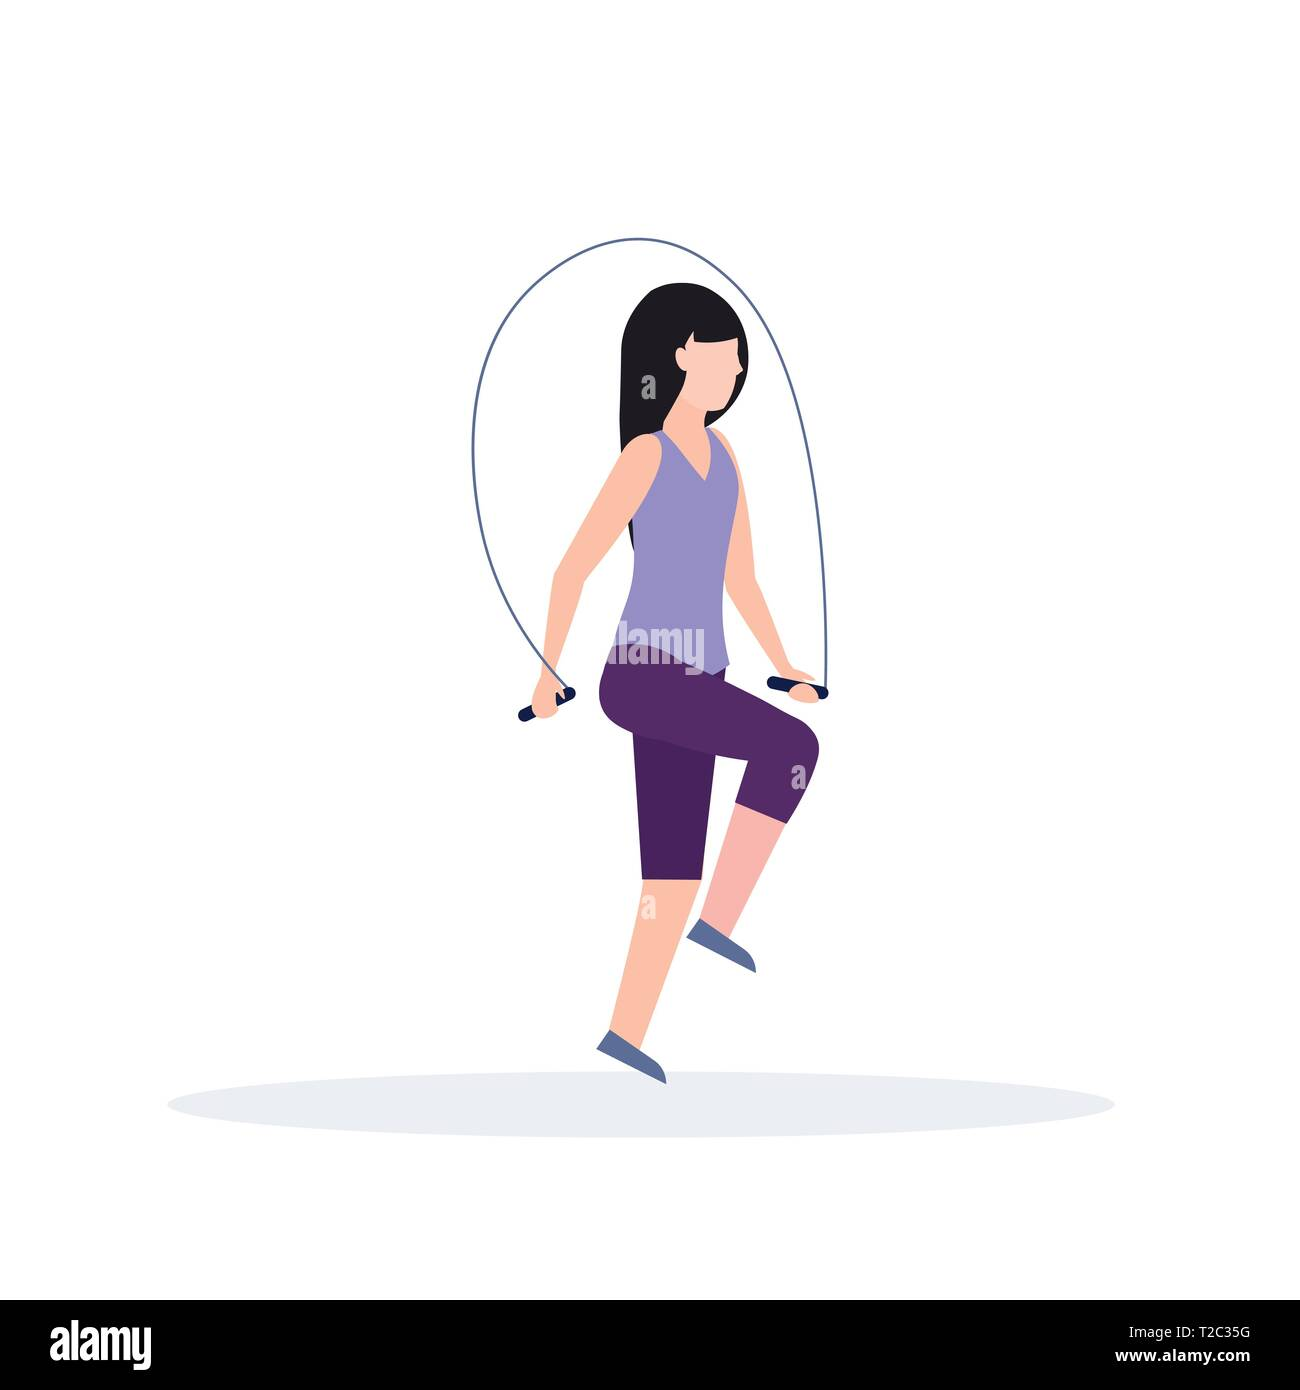 Sporty Woman Doing Exercises With Jumping Rope Girl Training In Gym Aerobic Workout Healthy Lifestyle Concept Flat White Background Stock Vector Image Art Alamy